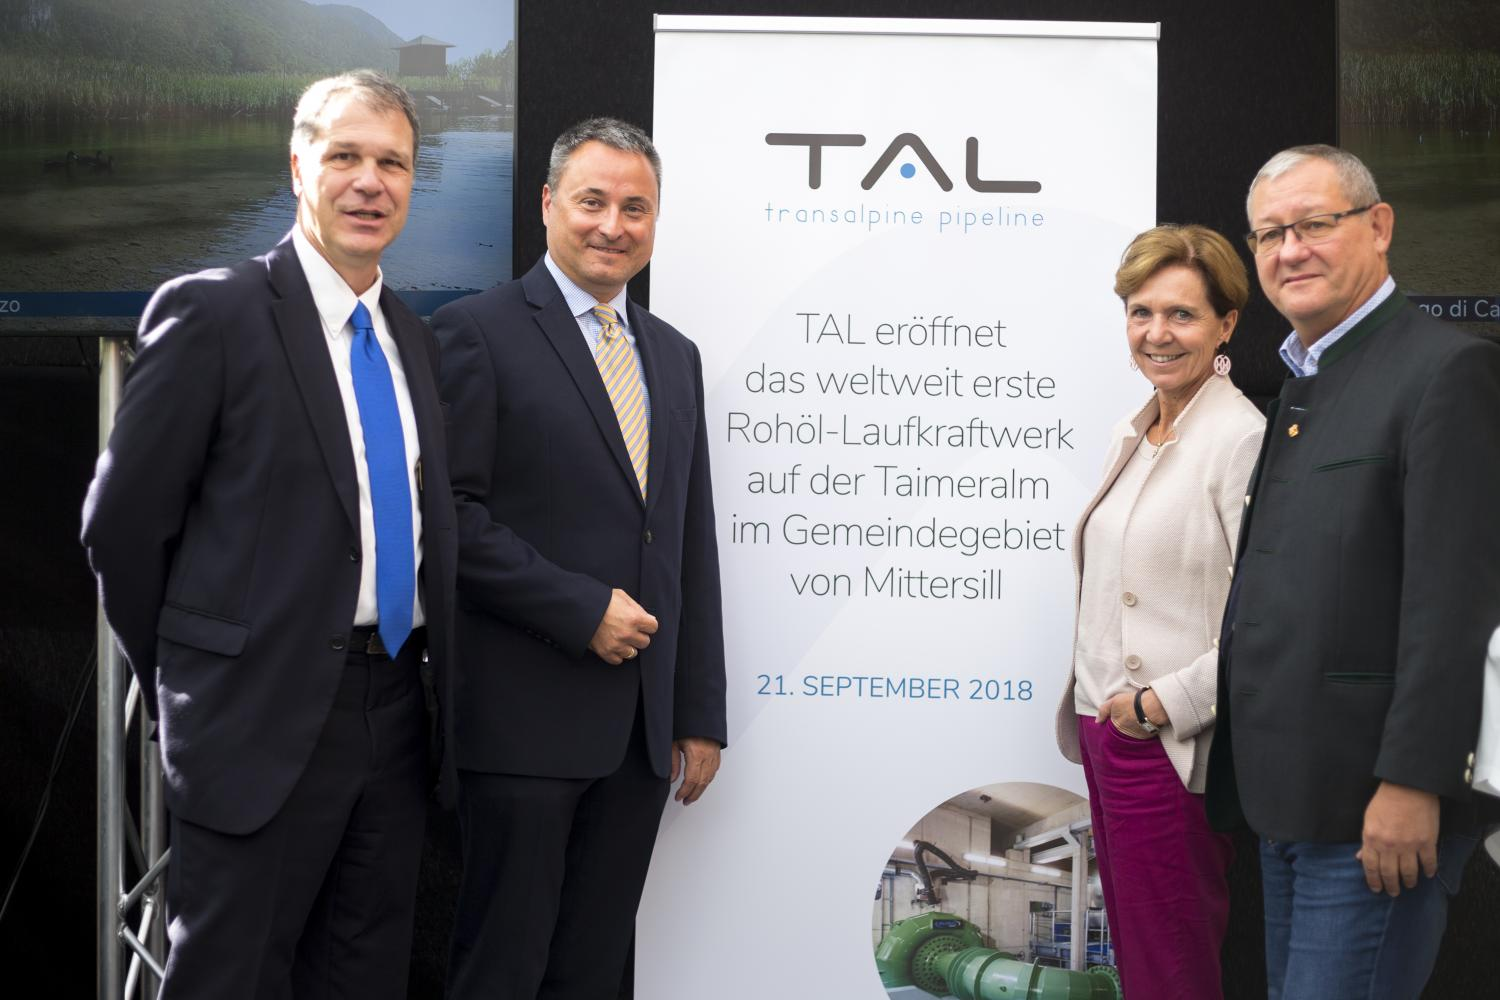 TAL GROUP INAUGURATES THE FIRST CRUDE OIL POWER STATION